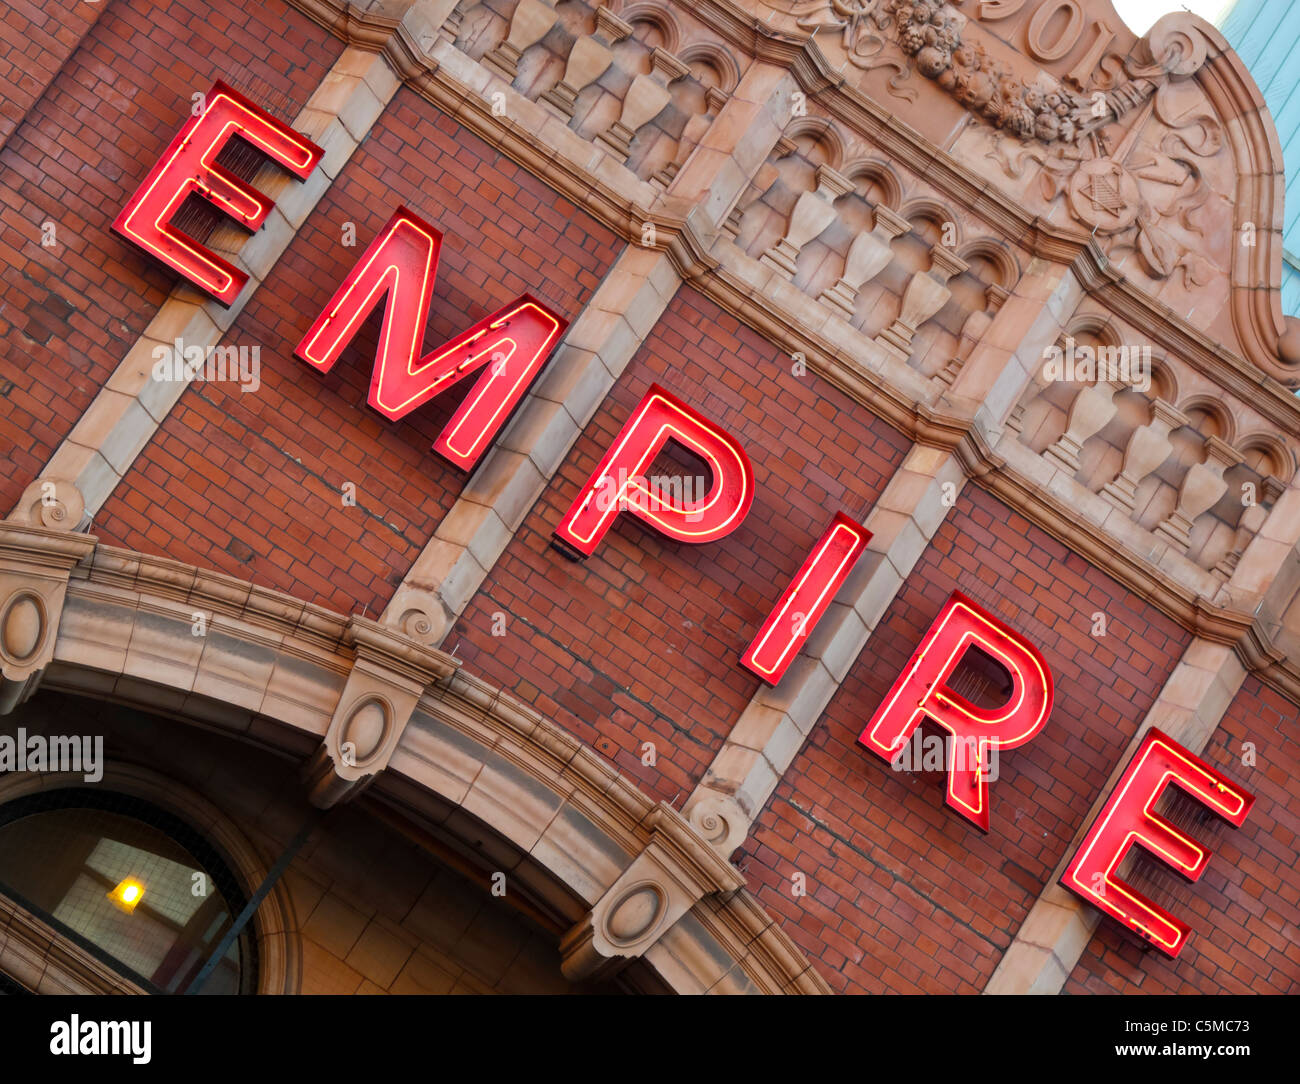 Illuminated sign outside the Hackney Empire Theatre in East London  UK built in 1901 by architect Frank Matcham - Stock Image